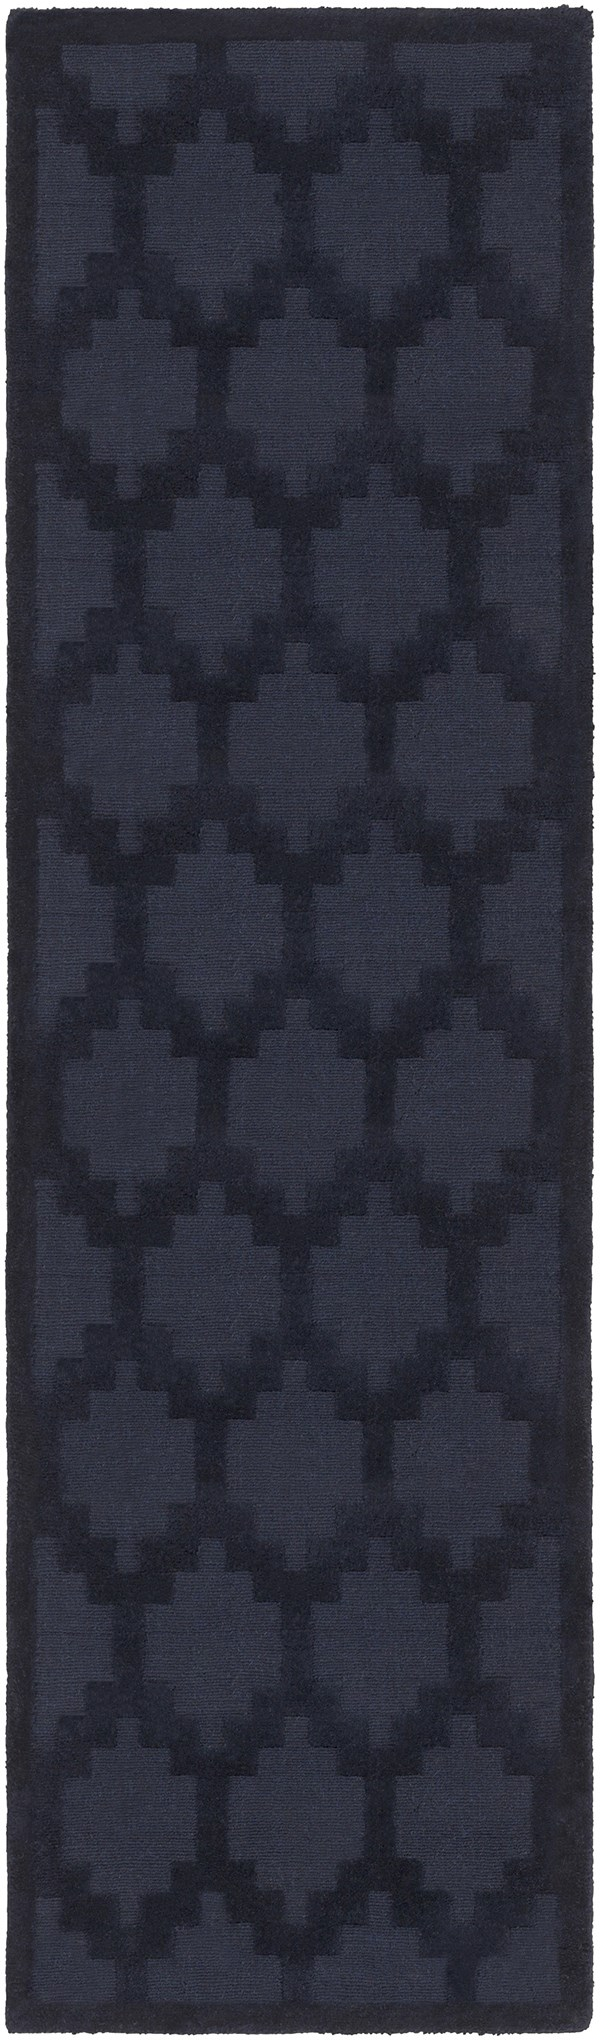 Navy (AWMP-4003) Textured Solid Area Rug